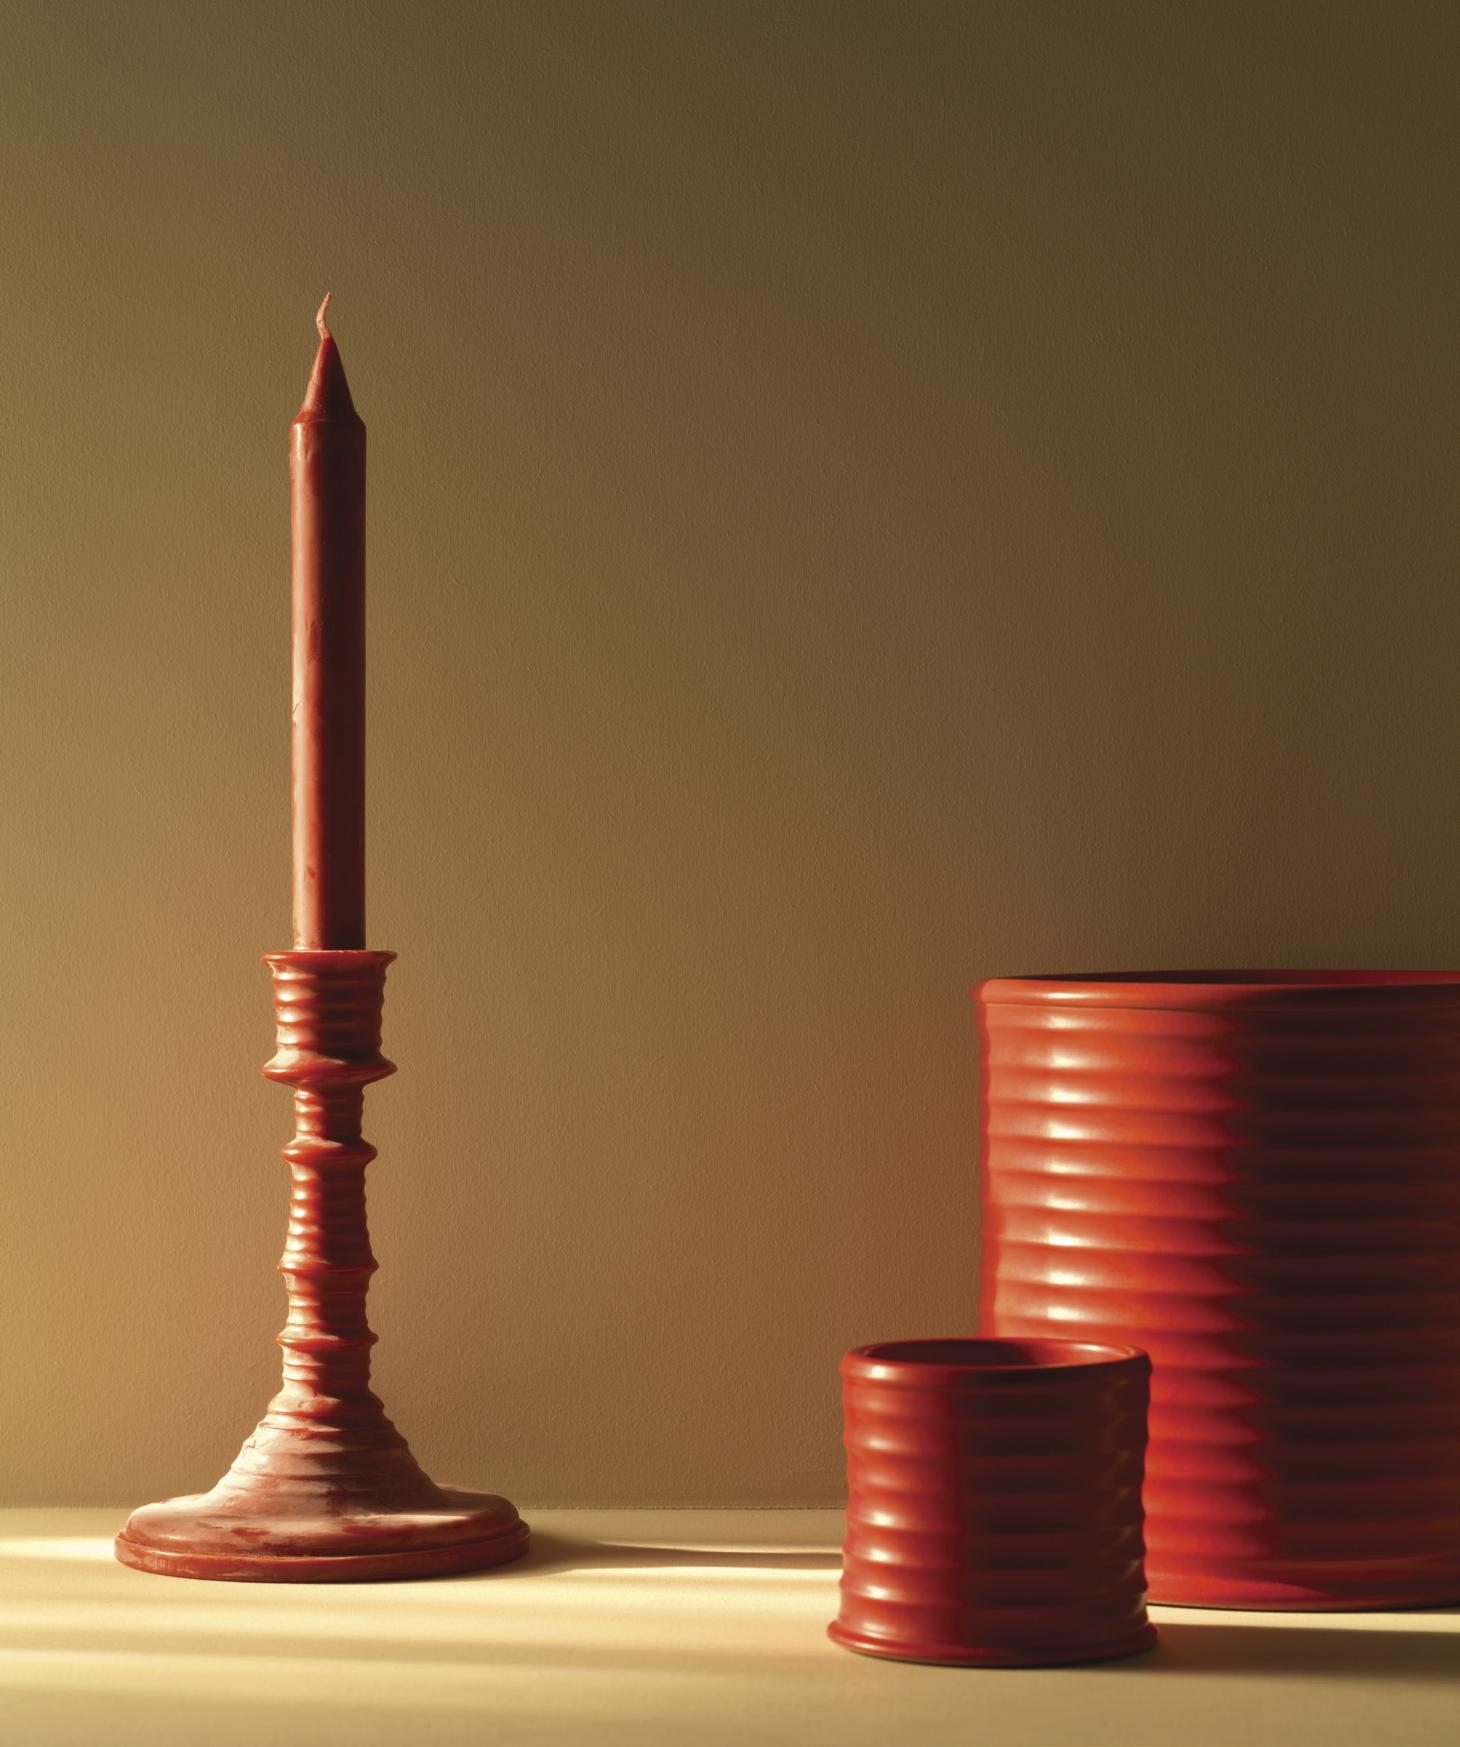 tomato scented red candle and red candelabra by Loewe